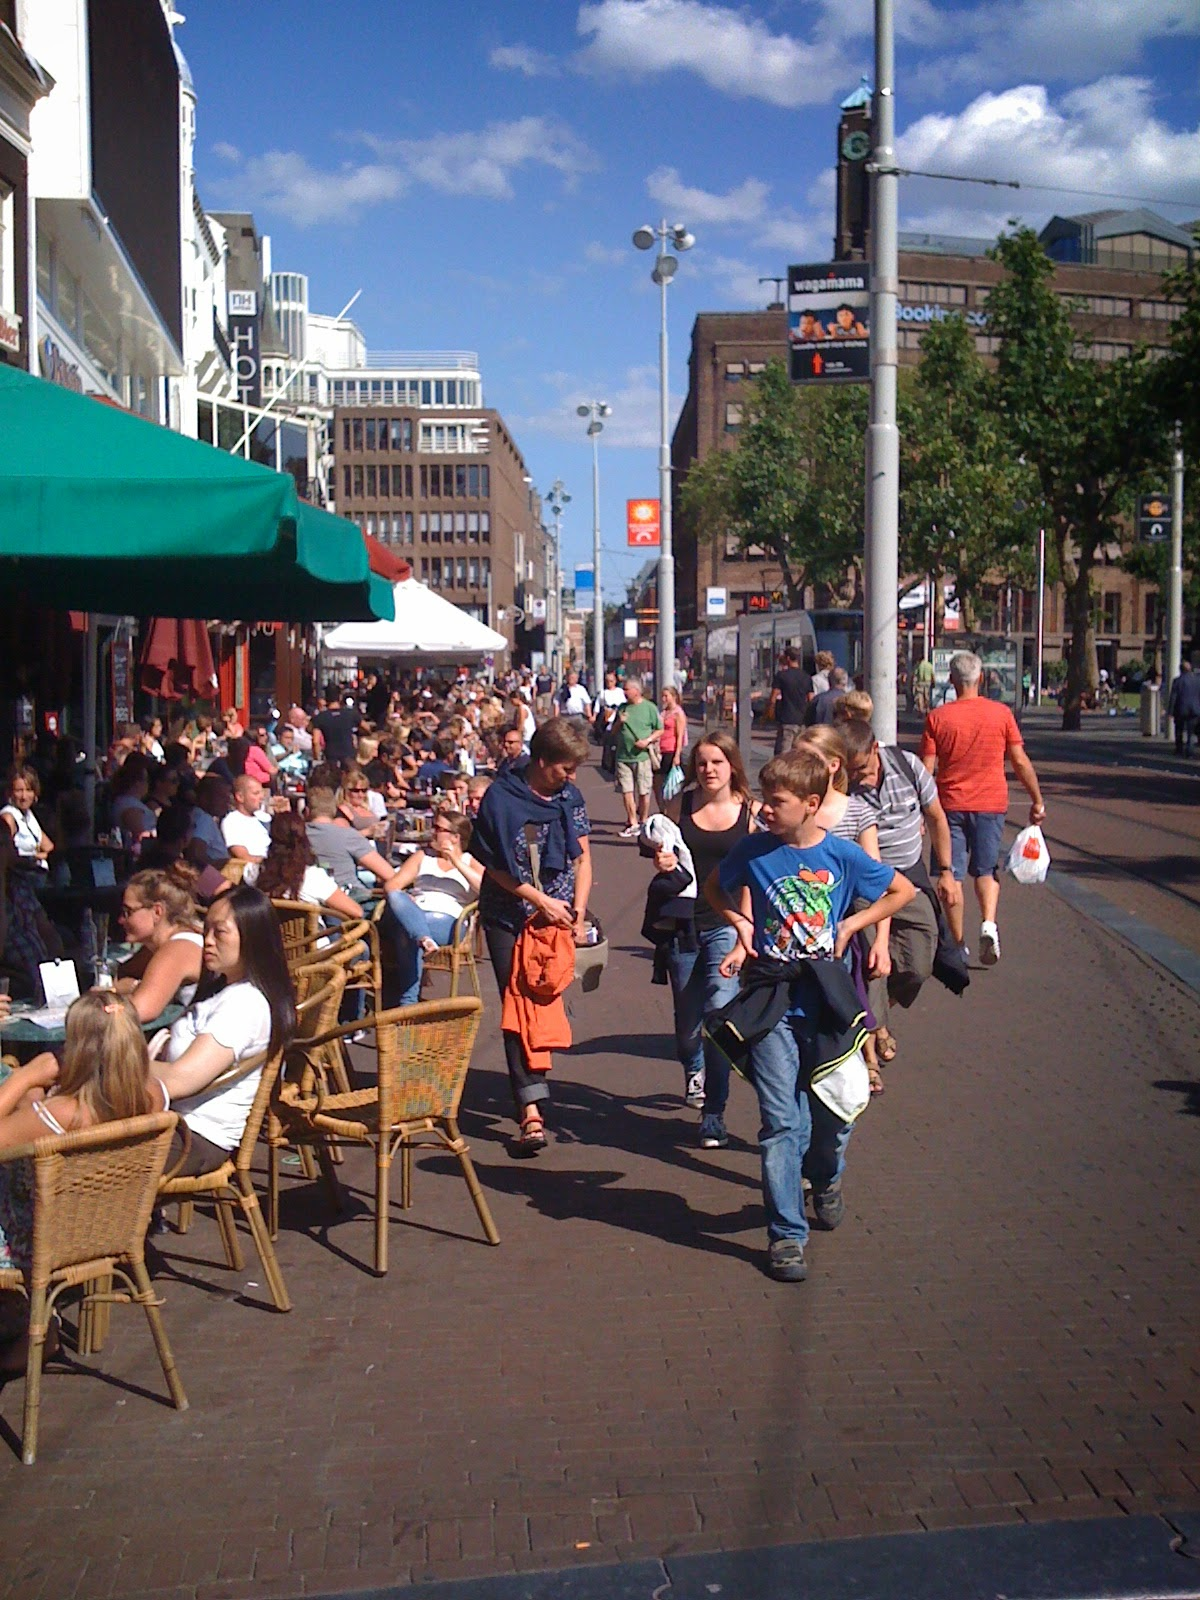 Every year more tourists in Amsterdam